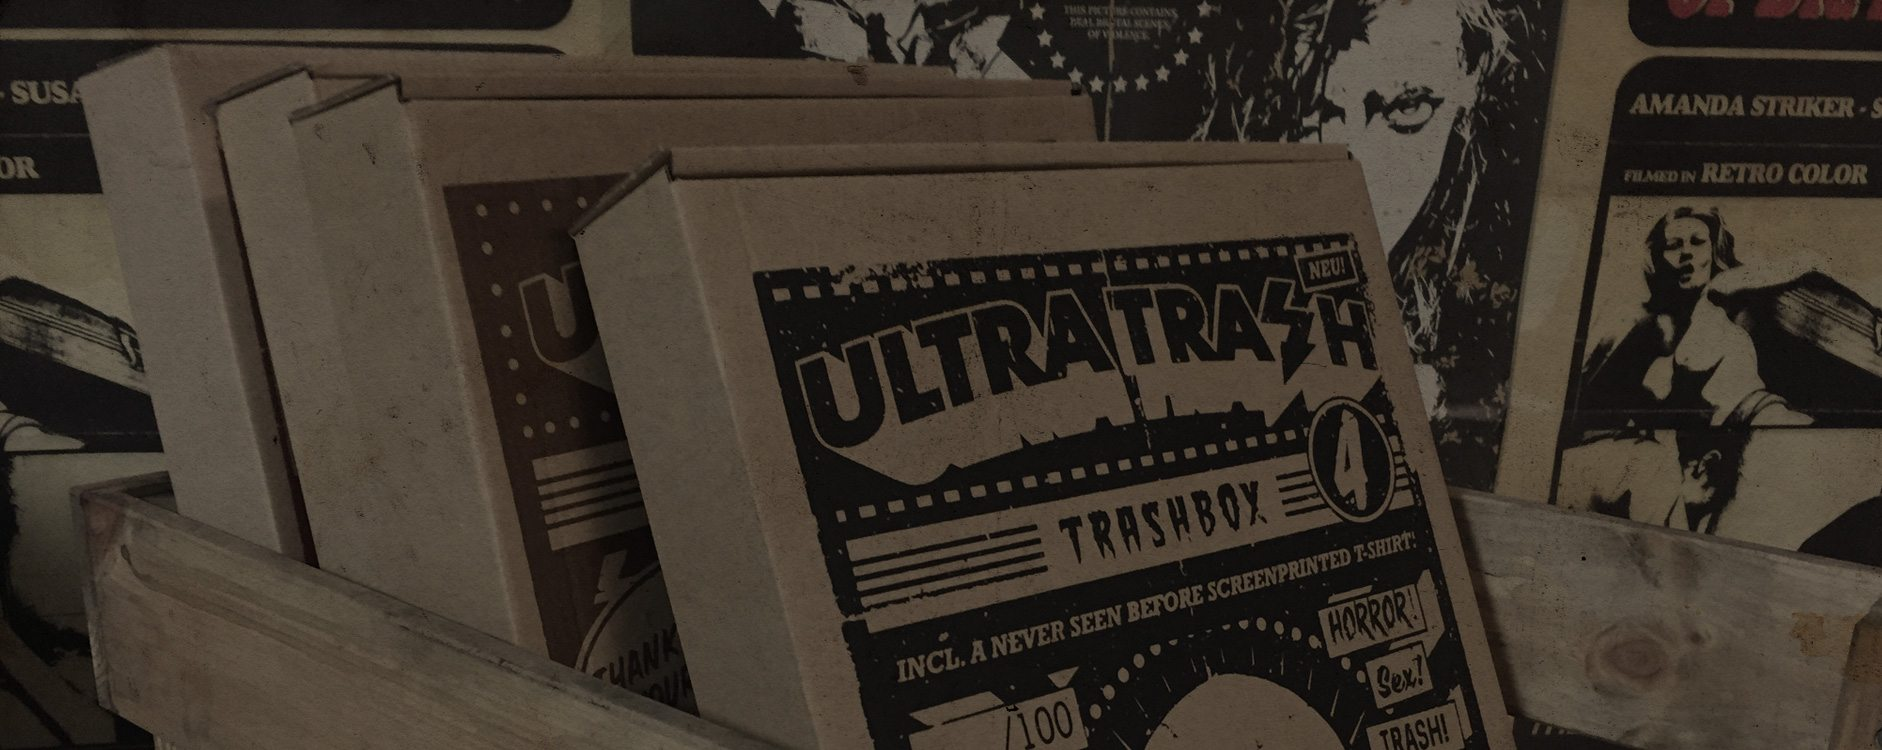 ultra-trash-trashbox-banner